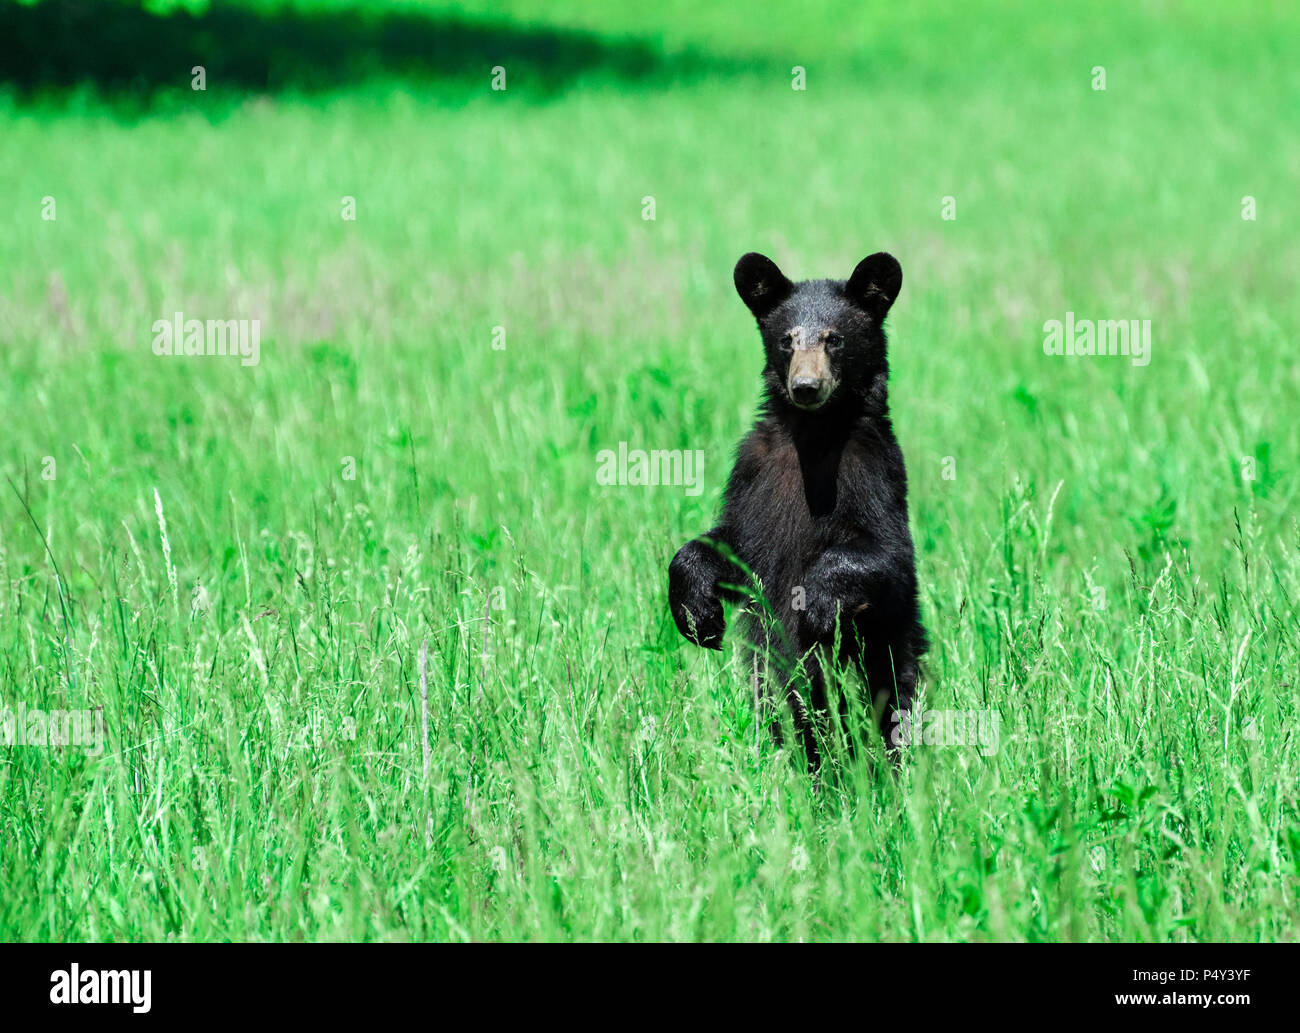 Horizontal shot of a North American Black Bear standing in a green field looking toward the camera. Stock Photo